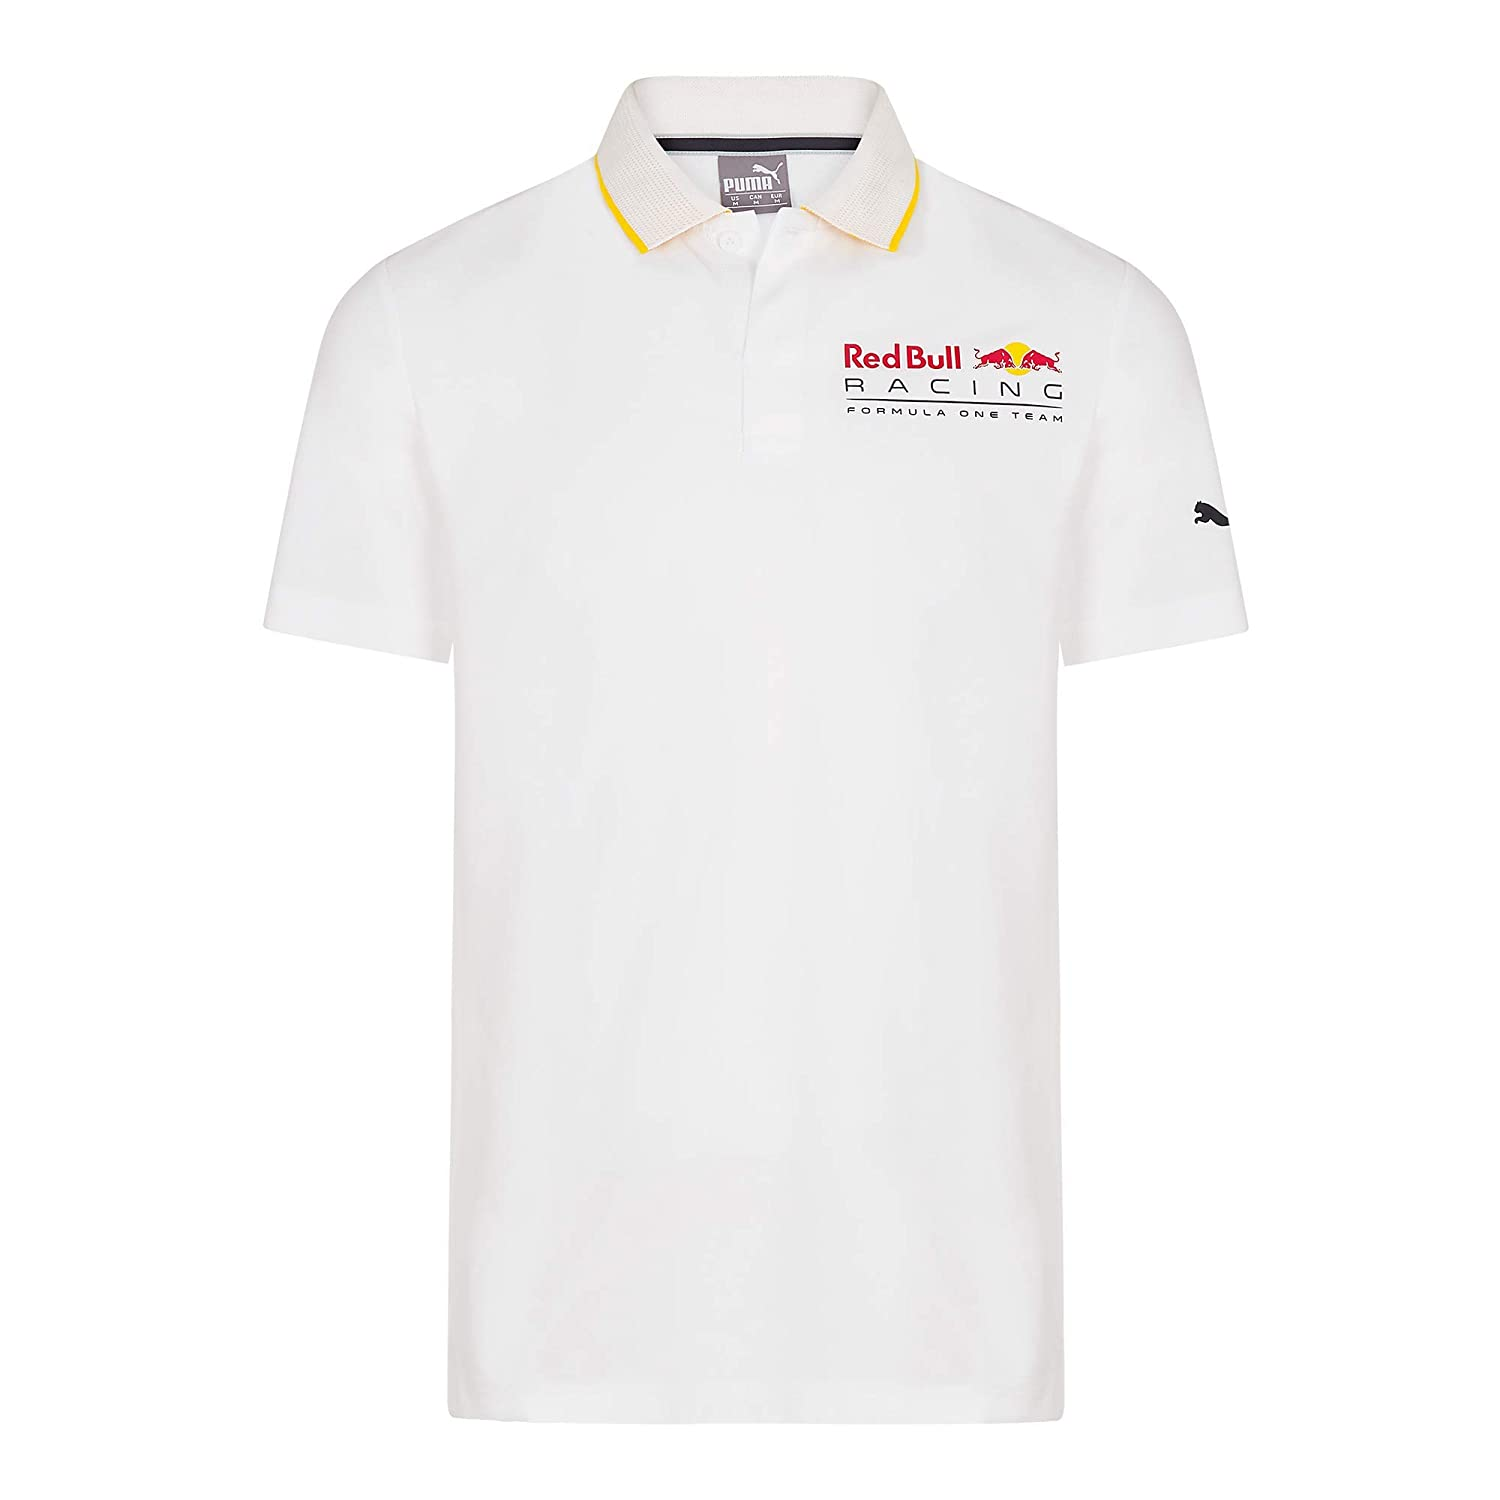 Red Bull Racing Street Camisa Polo, Hombres Small - Original ...